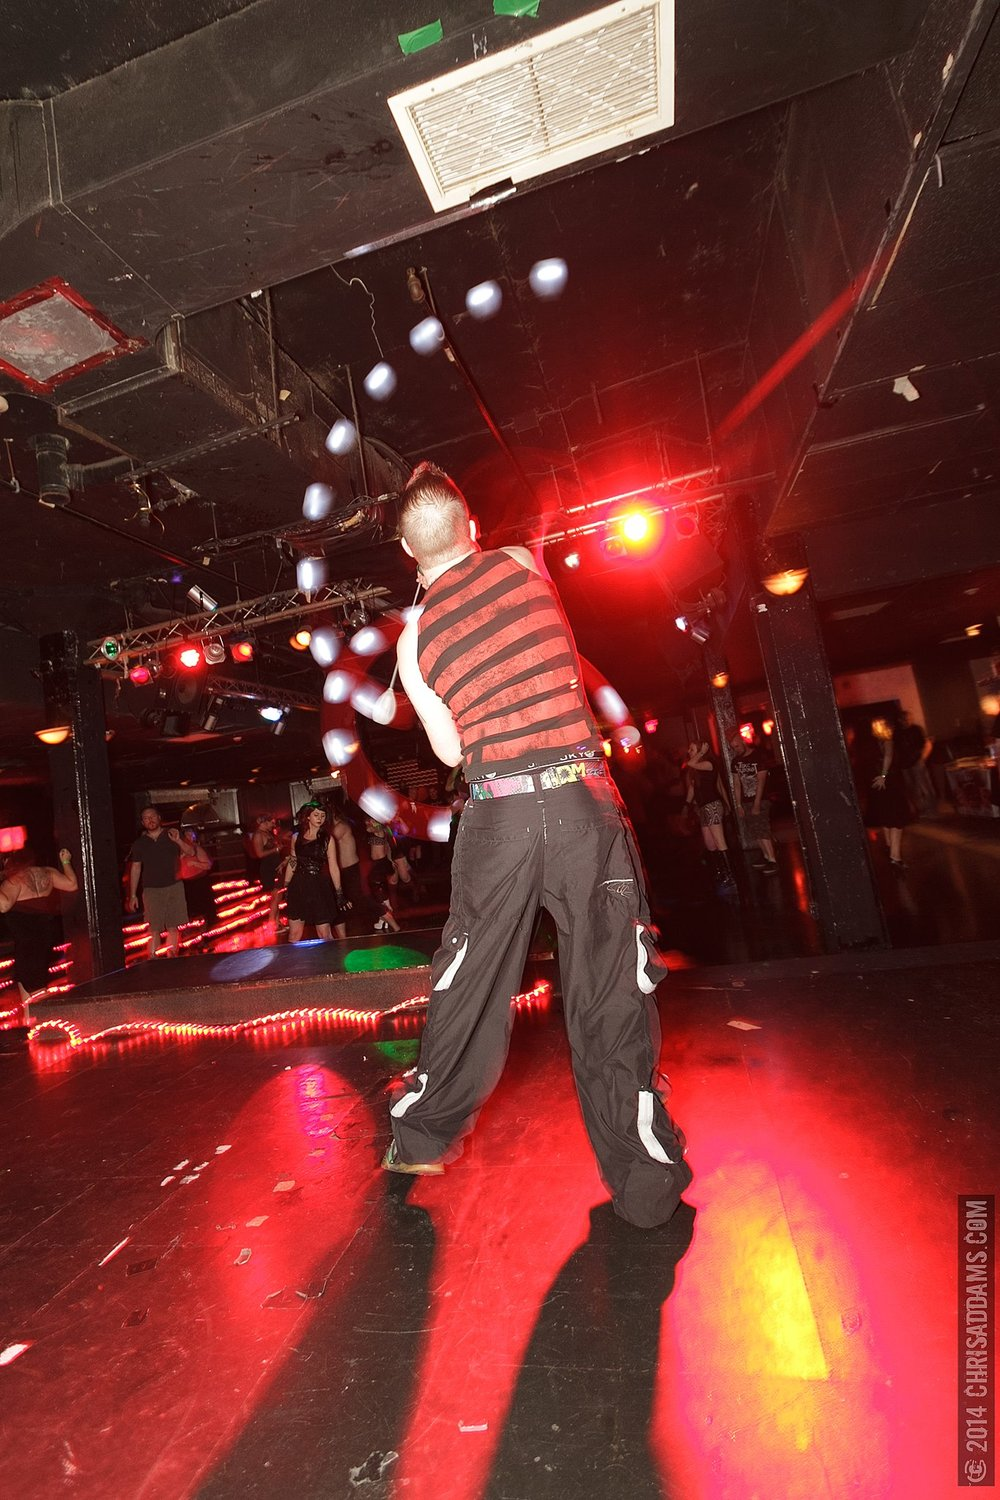 TheHavenClub-Goth-Industrial-Dance-Alternative-Northampton-MA (46).jpg